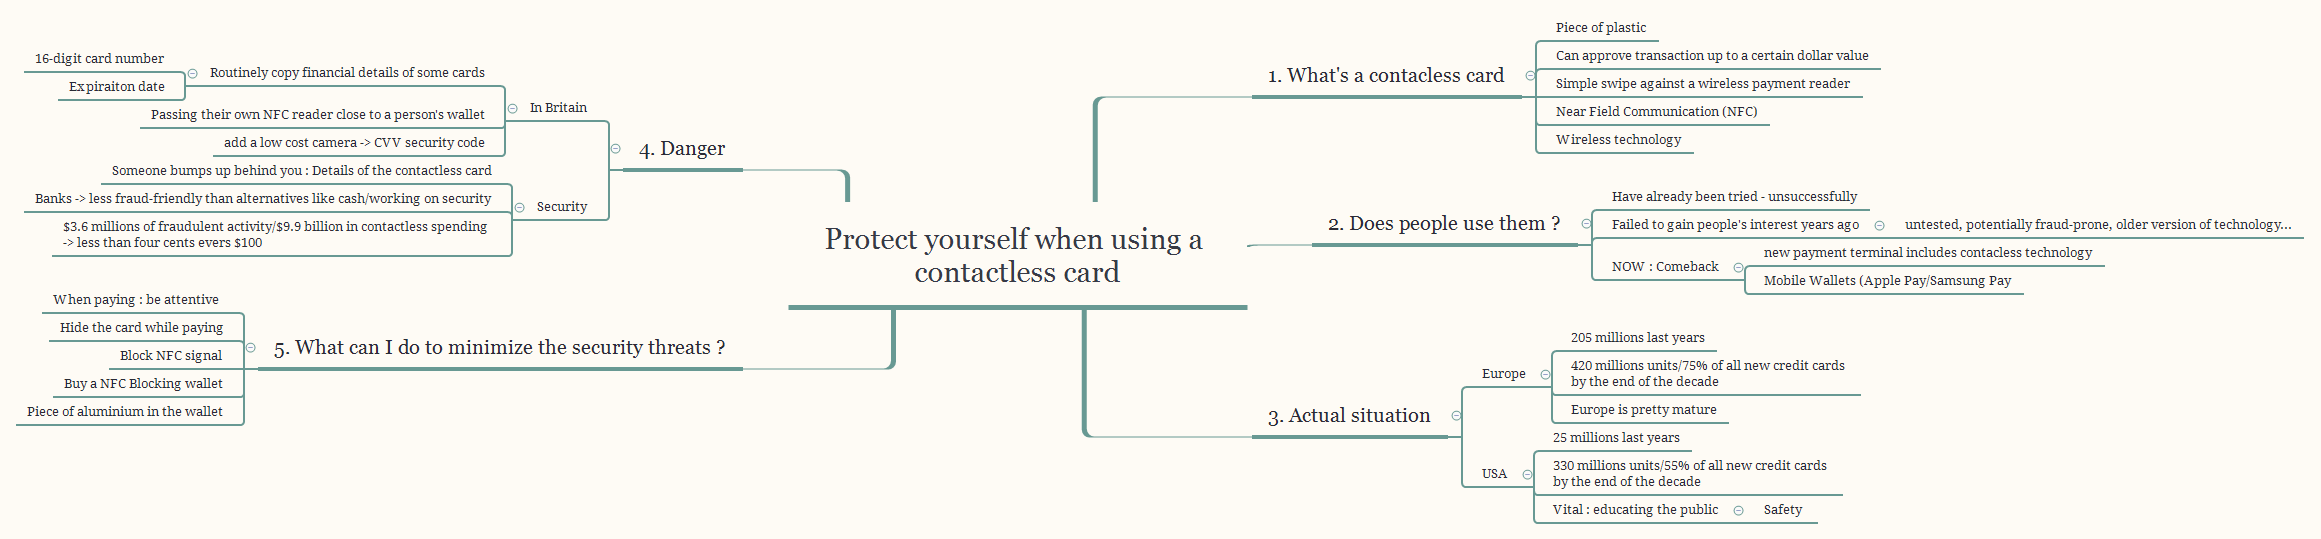 Protect yourself when using a contactless card - XMind